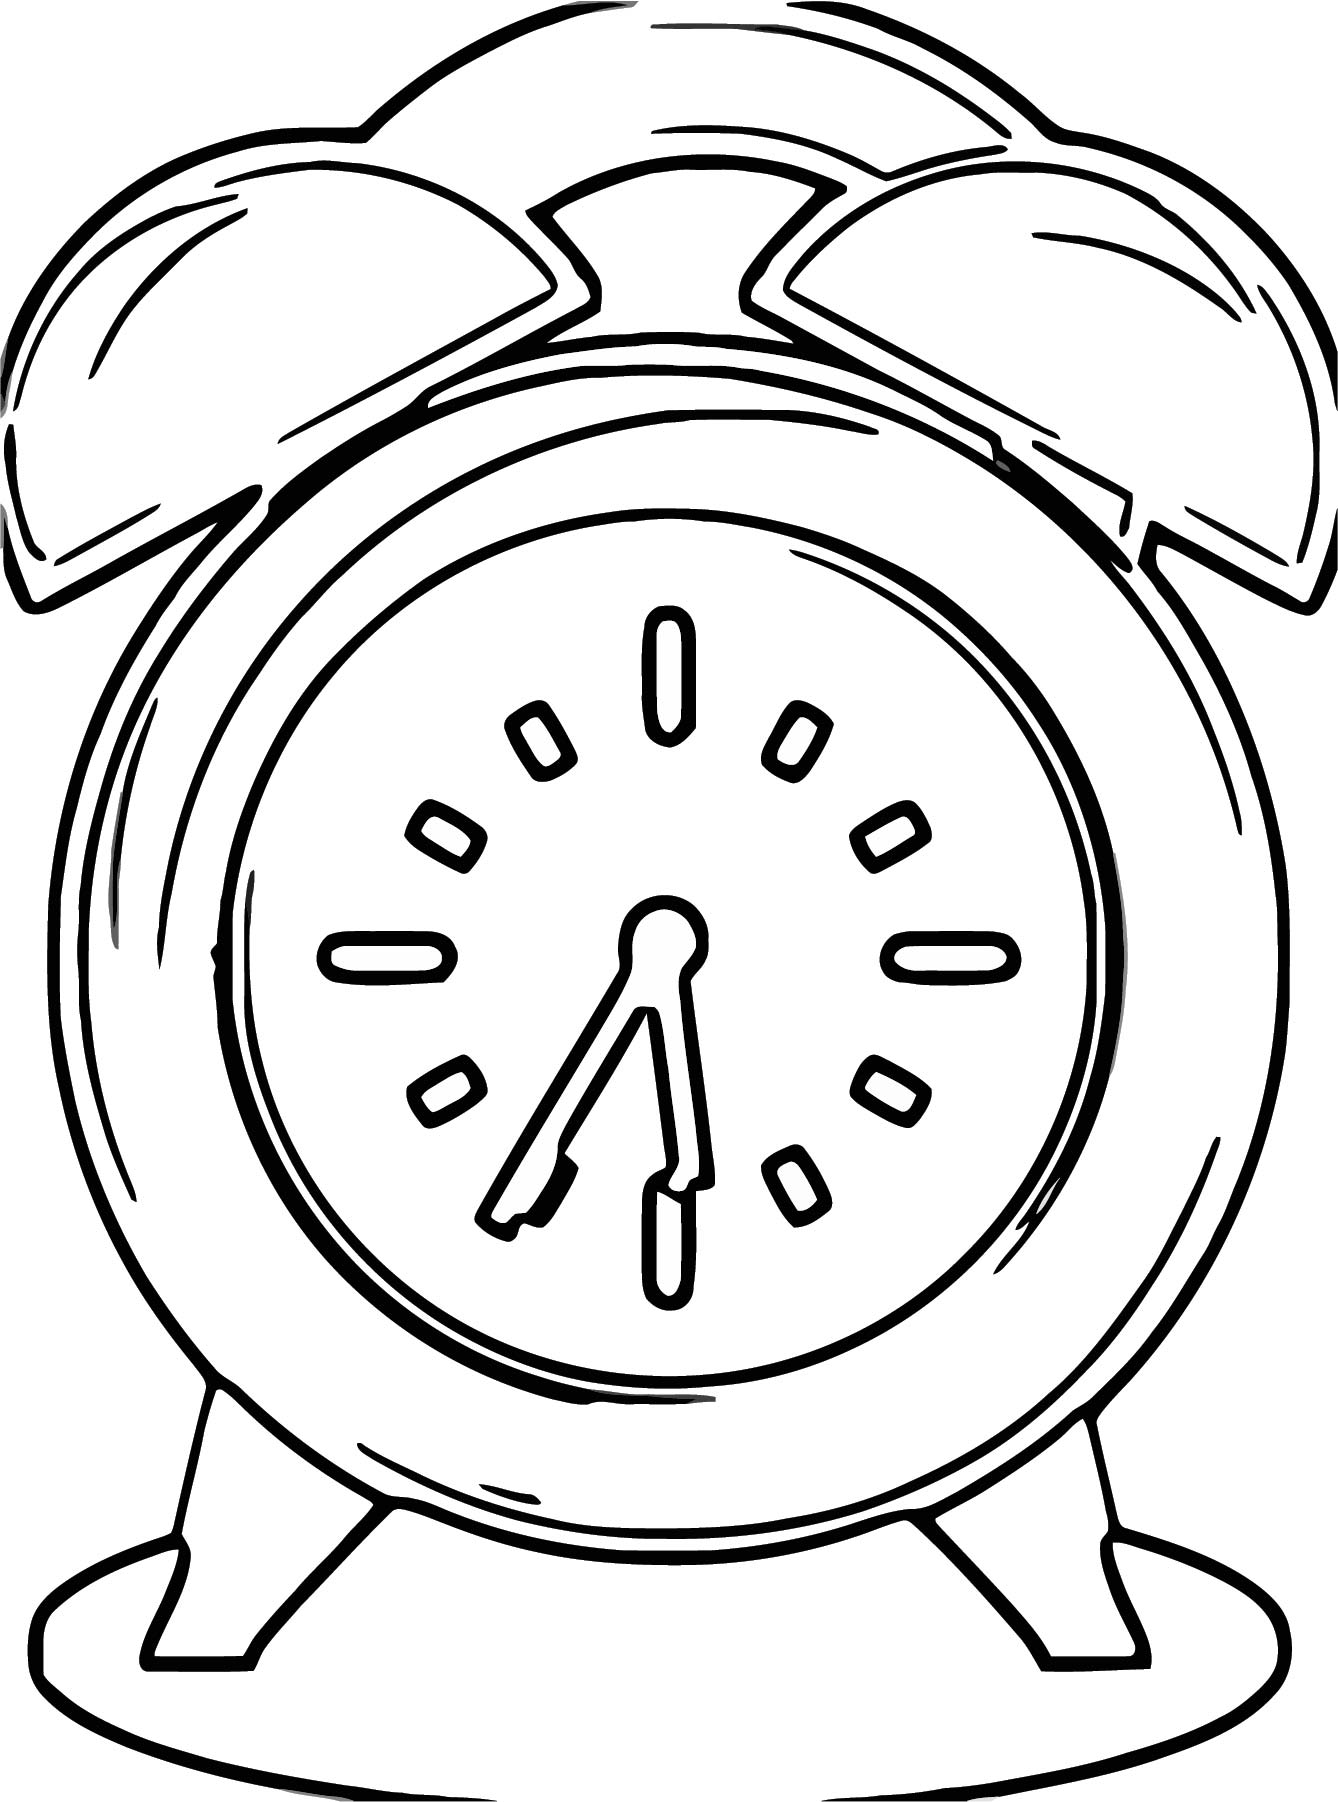 Cute Clock Clipart Free Printable 2 Cartoonized Free Printable Coloring Page